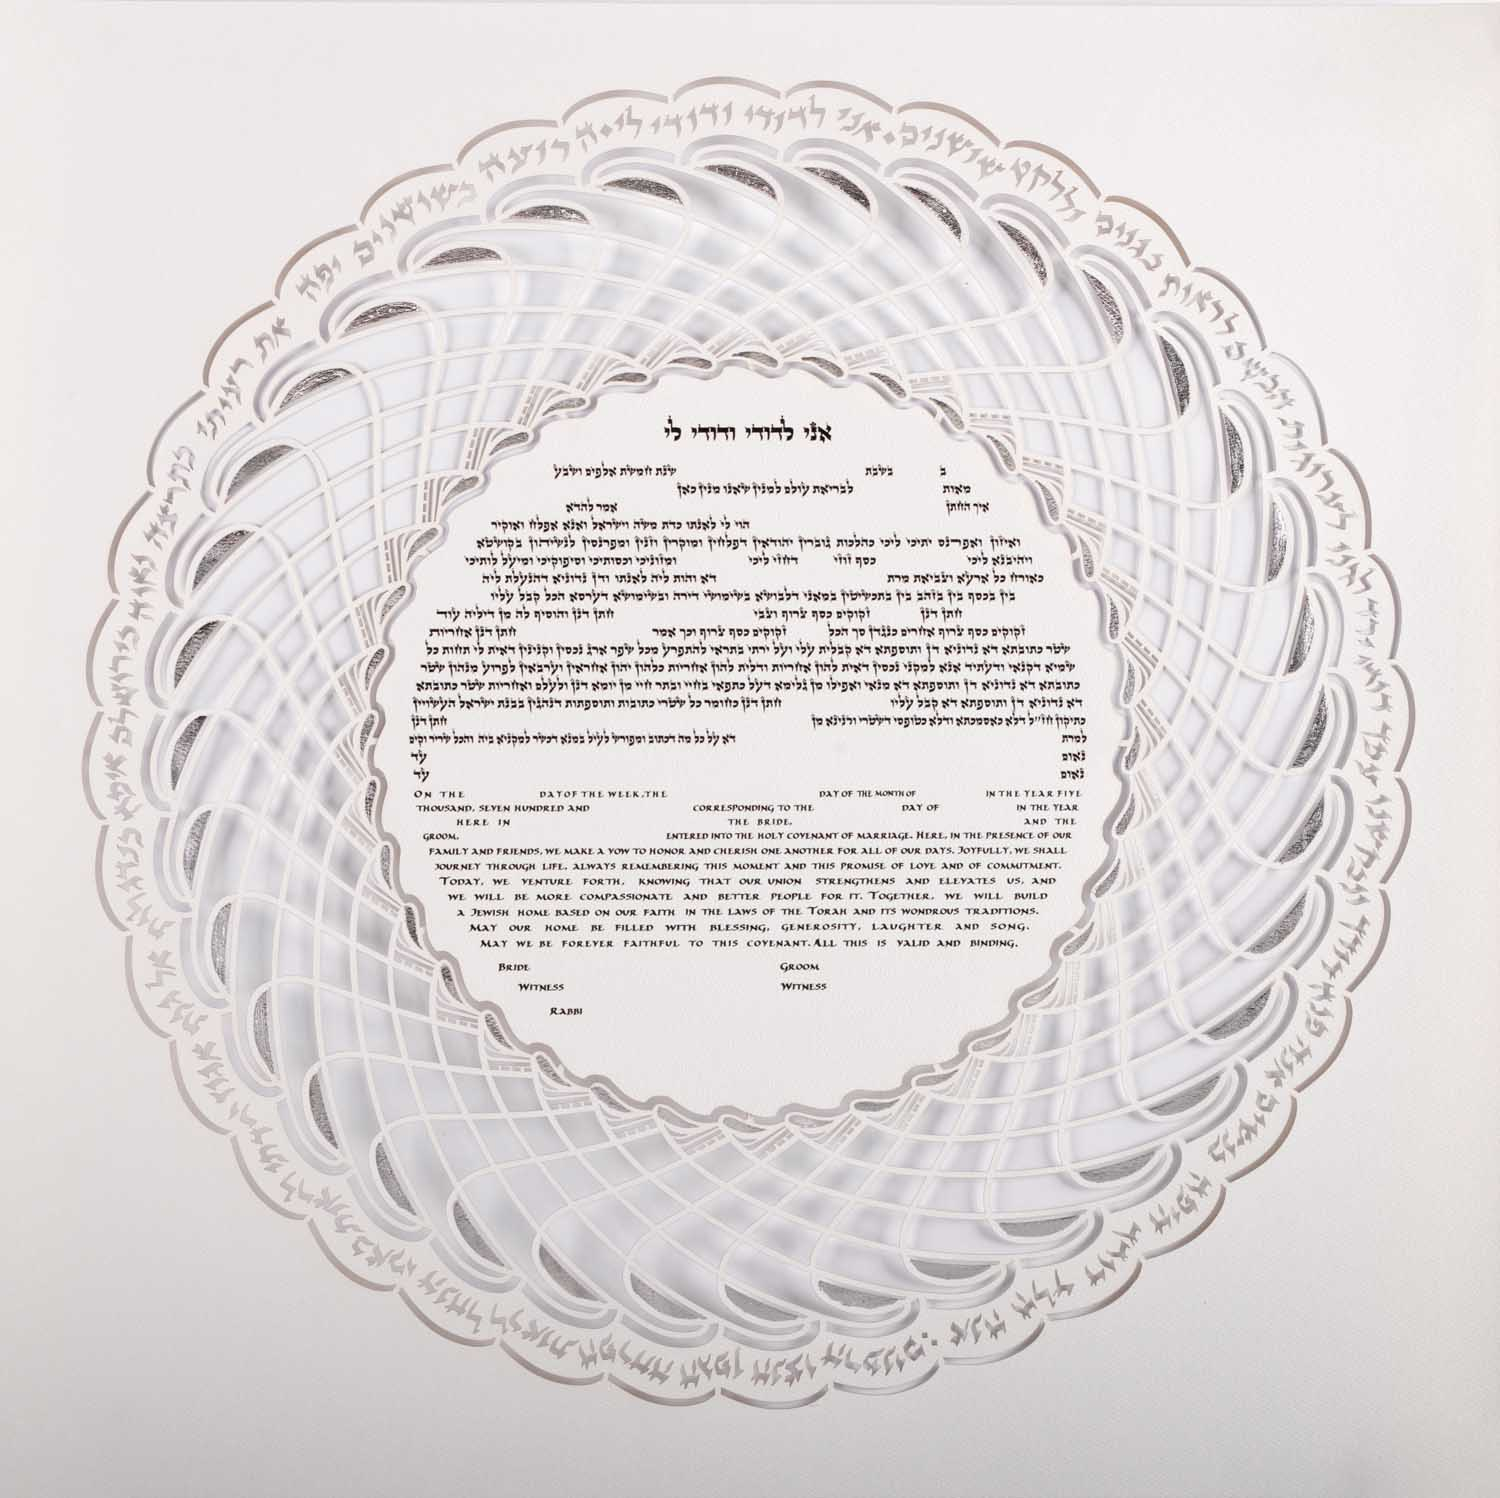 Witness rules help determine who signs a ketubah such as the one in the picture